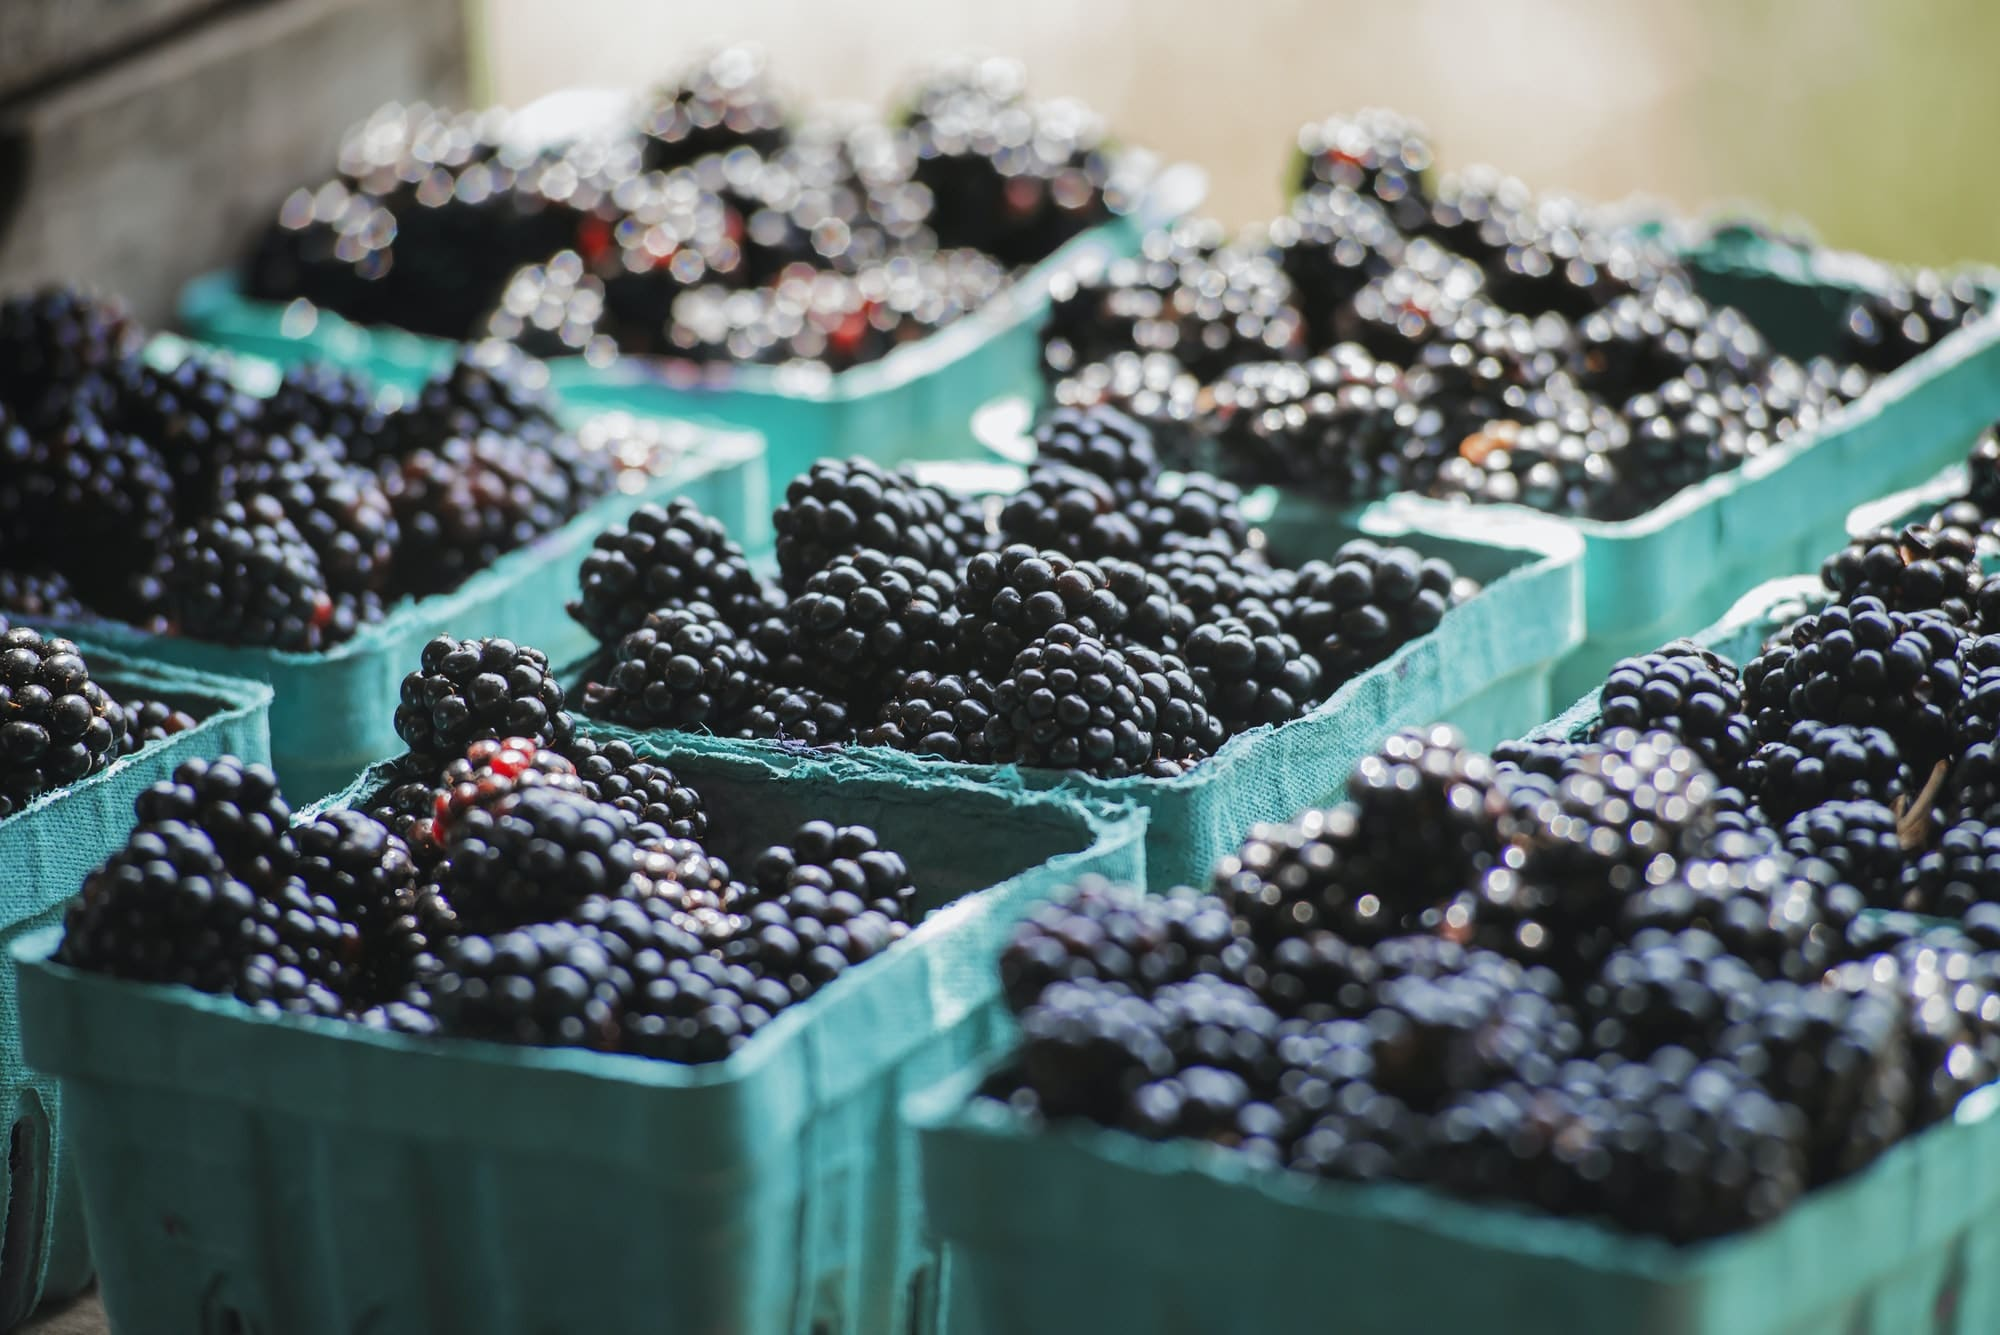 Organic blackberries in punnets at a market stall.